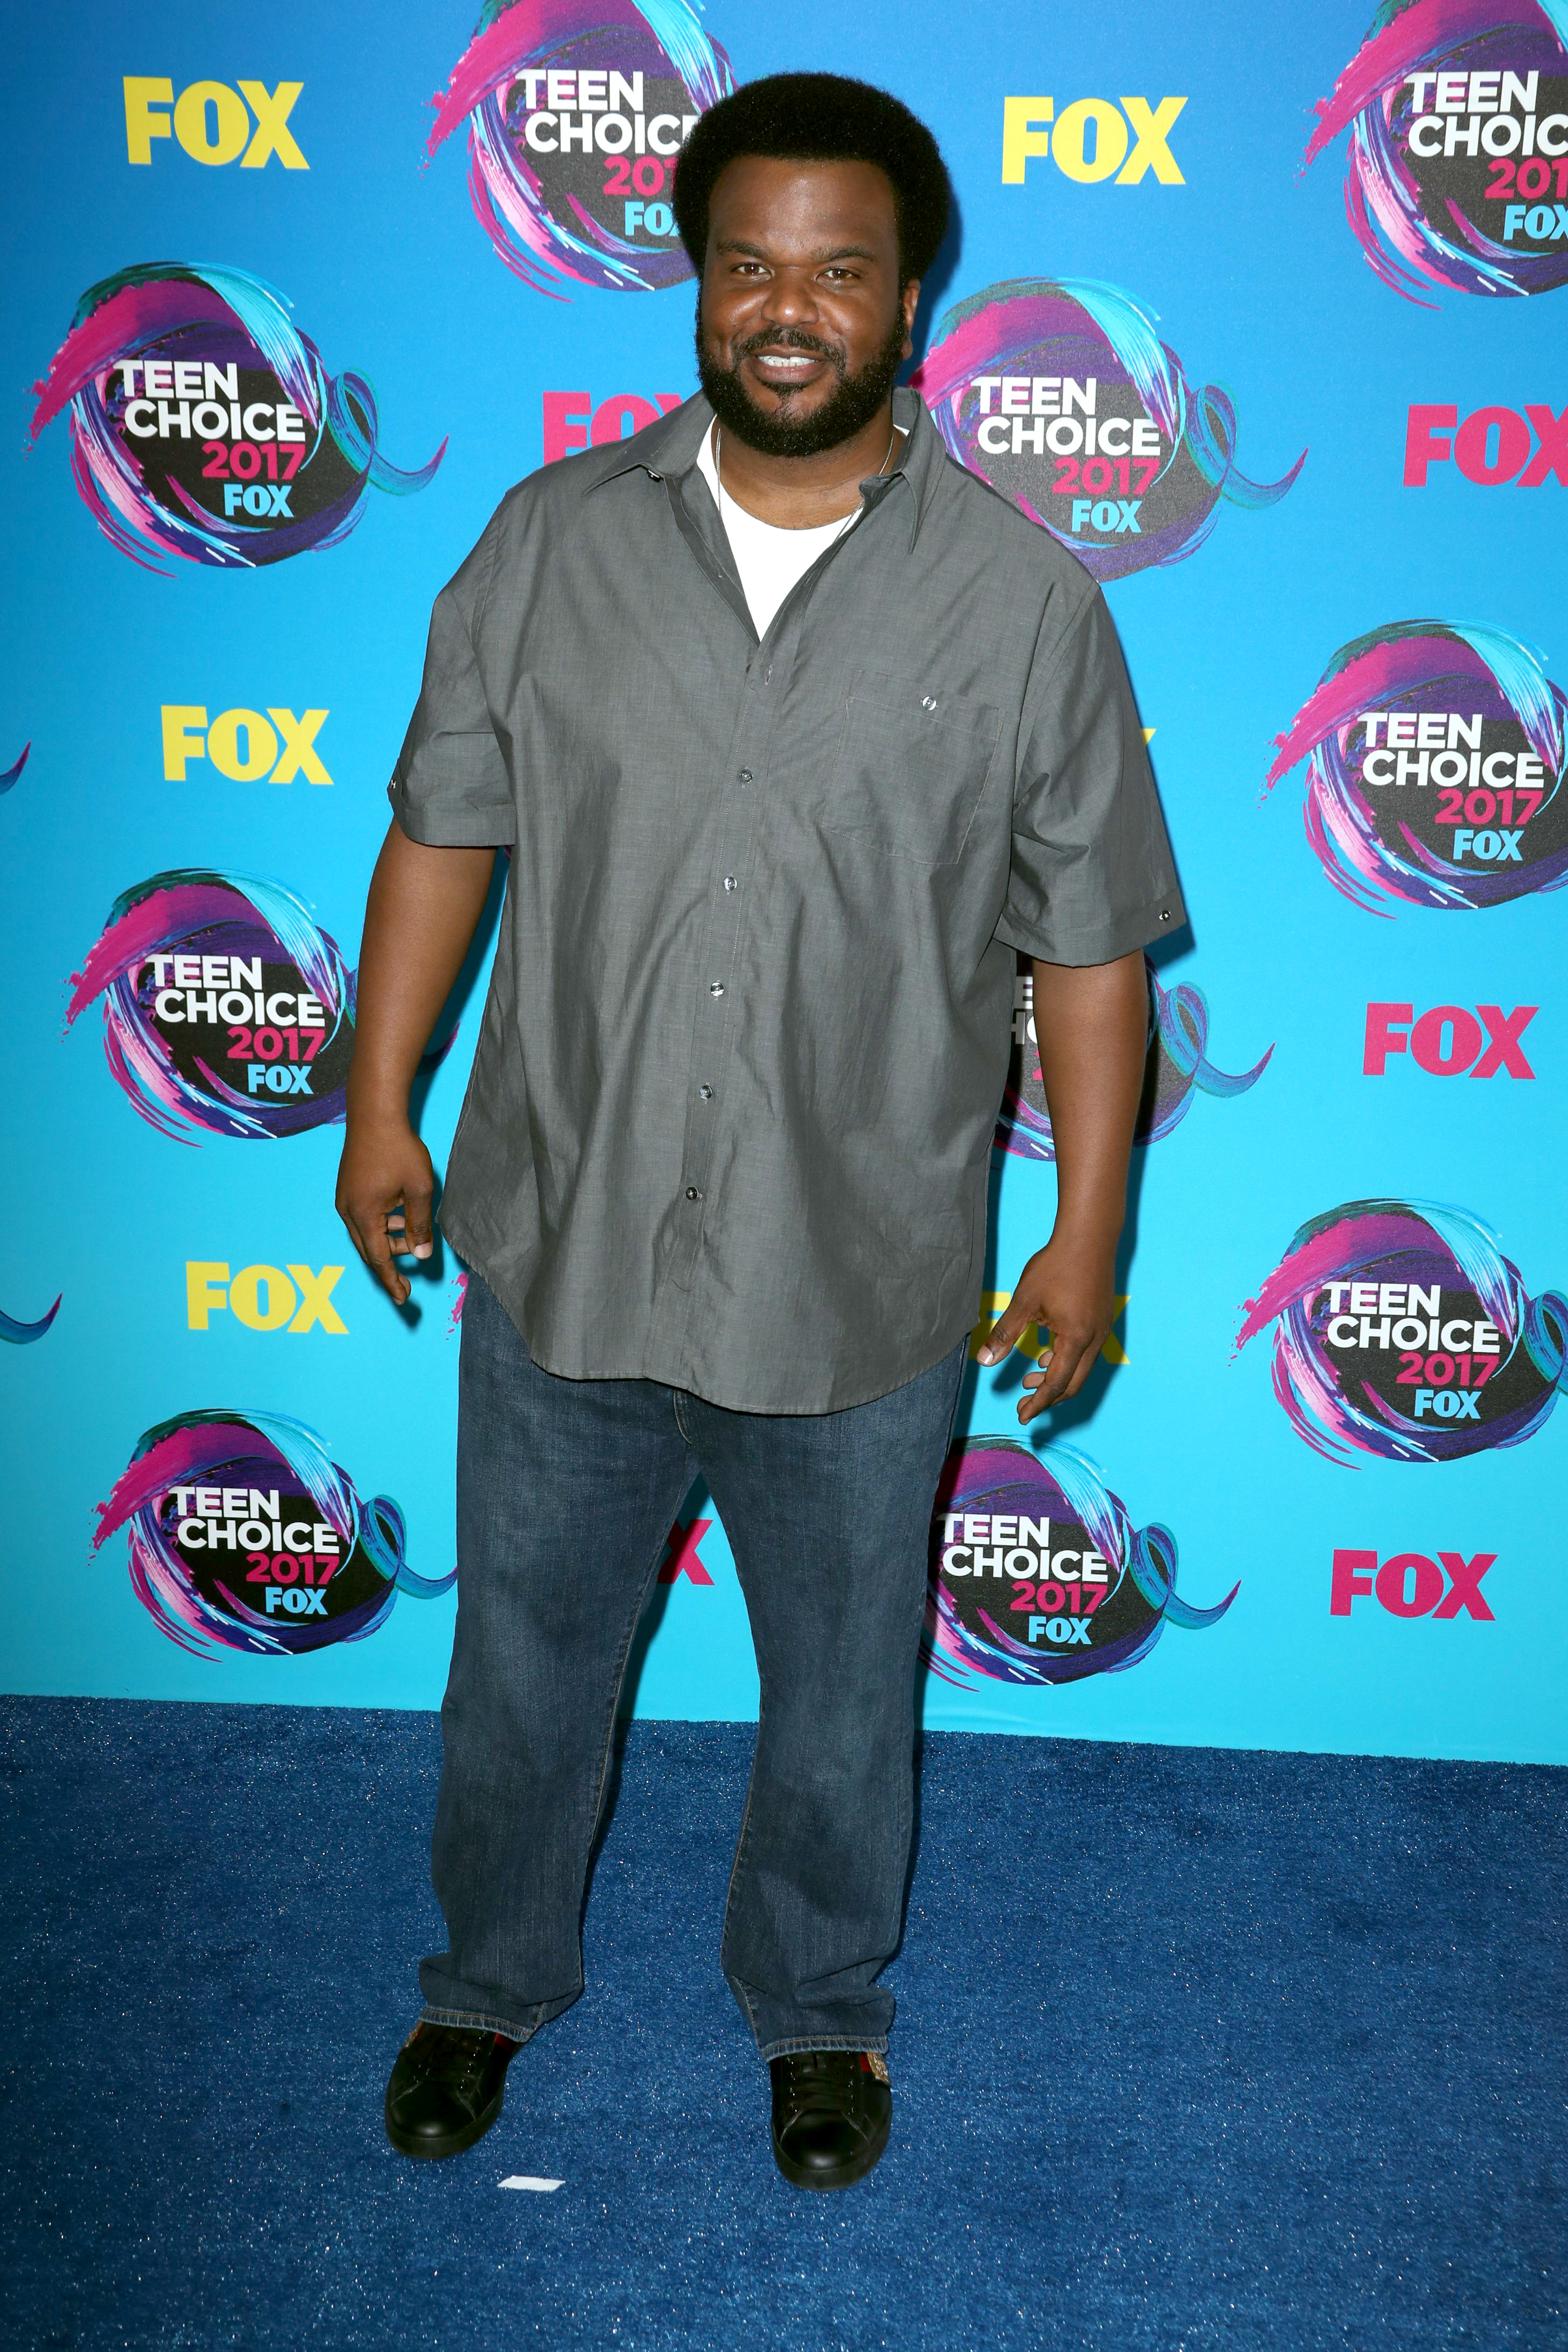 Craig Robinson attends the Teen Choice Awards in Los Angeles on Aug. 13, 2017.